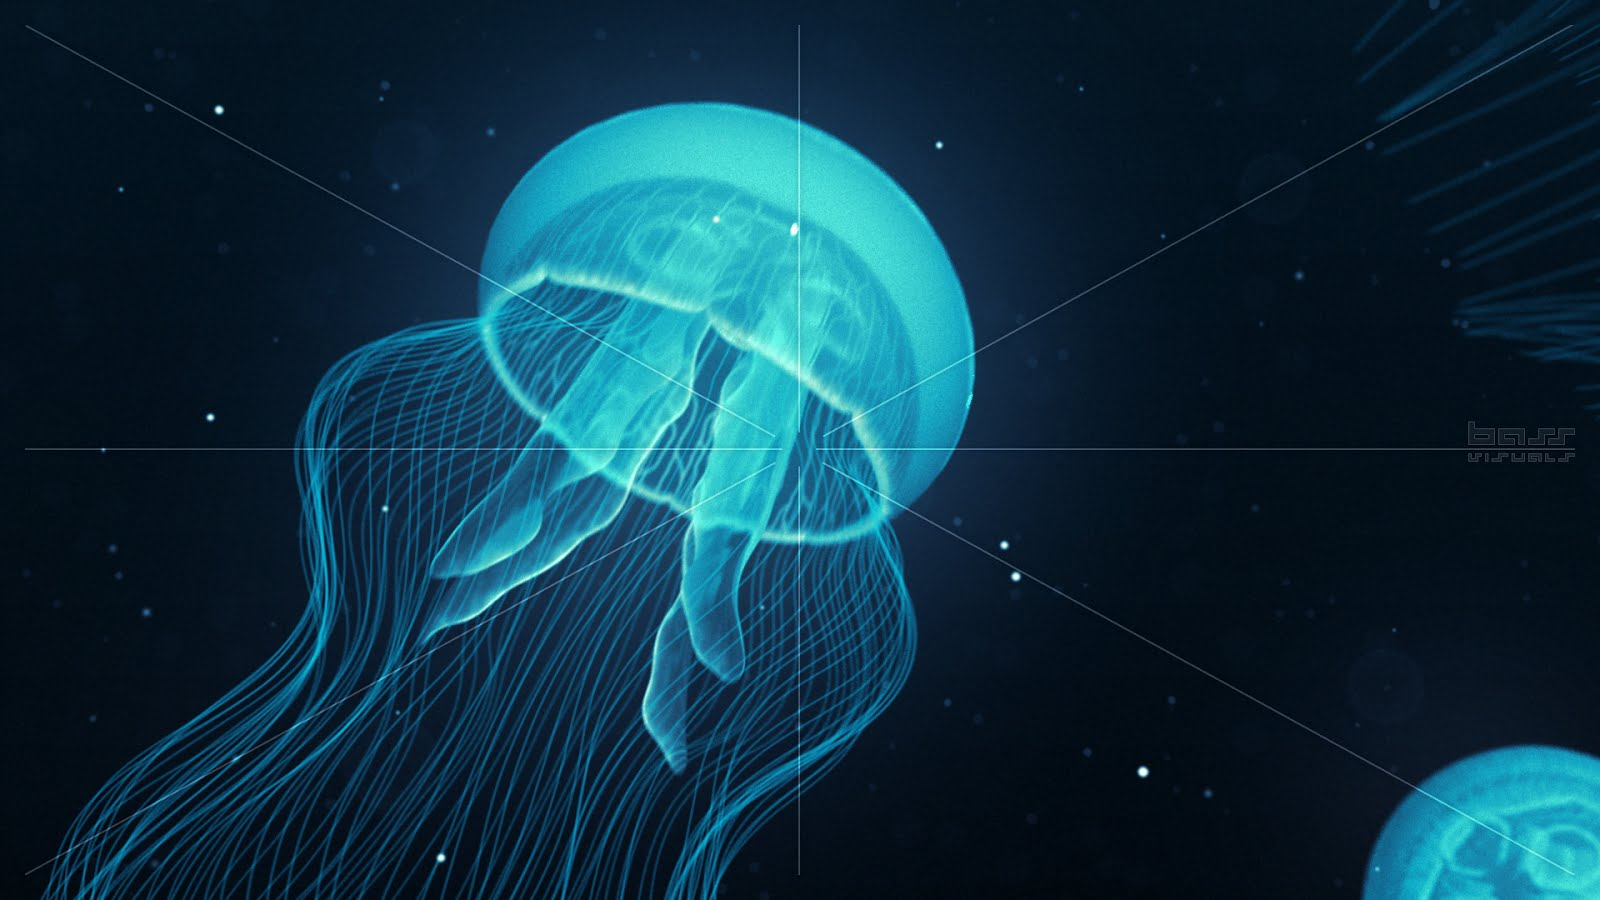 http://3.bp.blogspot.com/-r1jDsuzE6OA/UJ3bzdHKSBI/AAAAAAABjKc/vcoiwBFNIV4/s1600/Bass_Visuals_Jellyfish_Nightlights_Blue_HD_1920x1080_30p.jpg